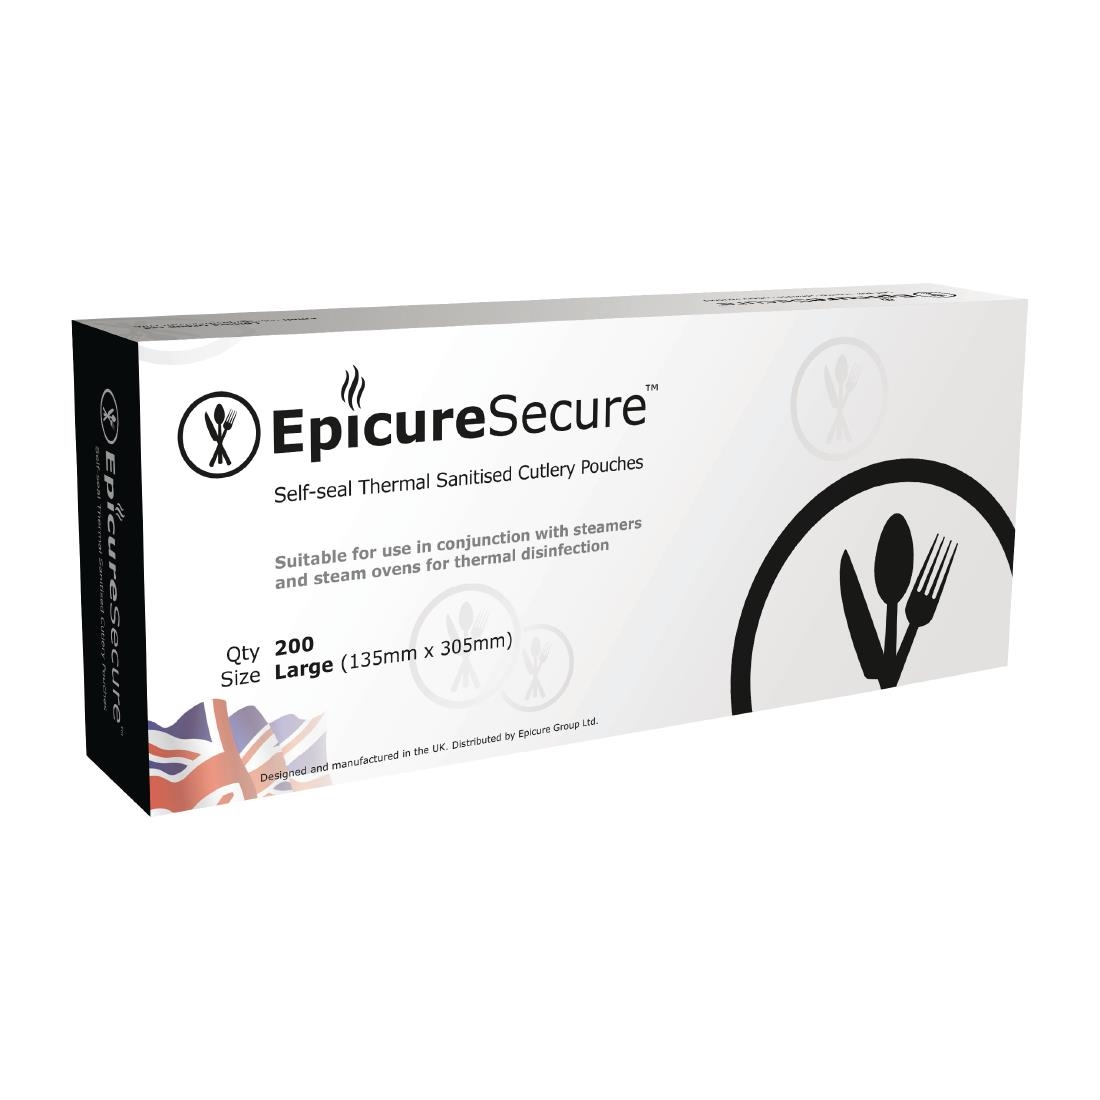 EpicureSecure Sealable Thermal Sanitised Cutlery Pouches Large (Pack of 200) Pack of 200